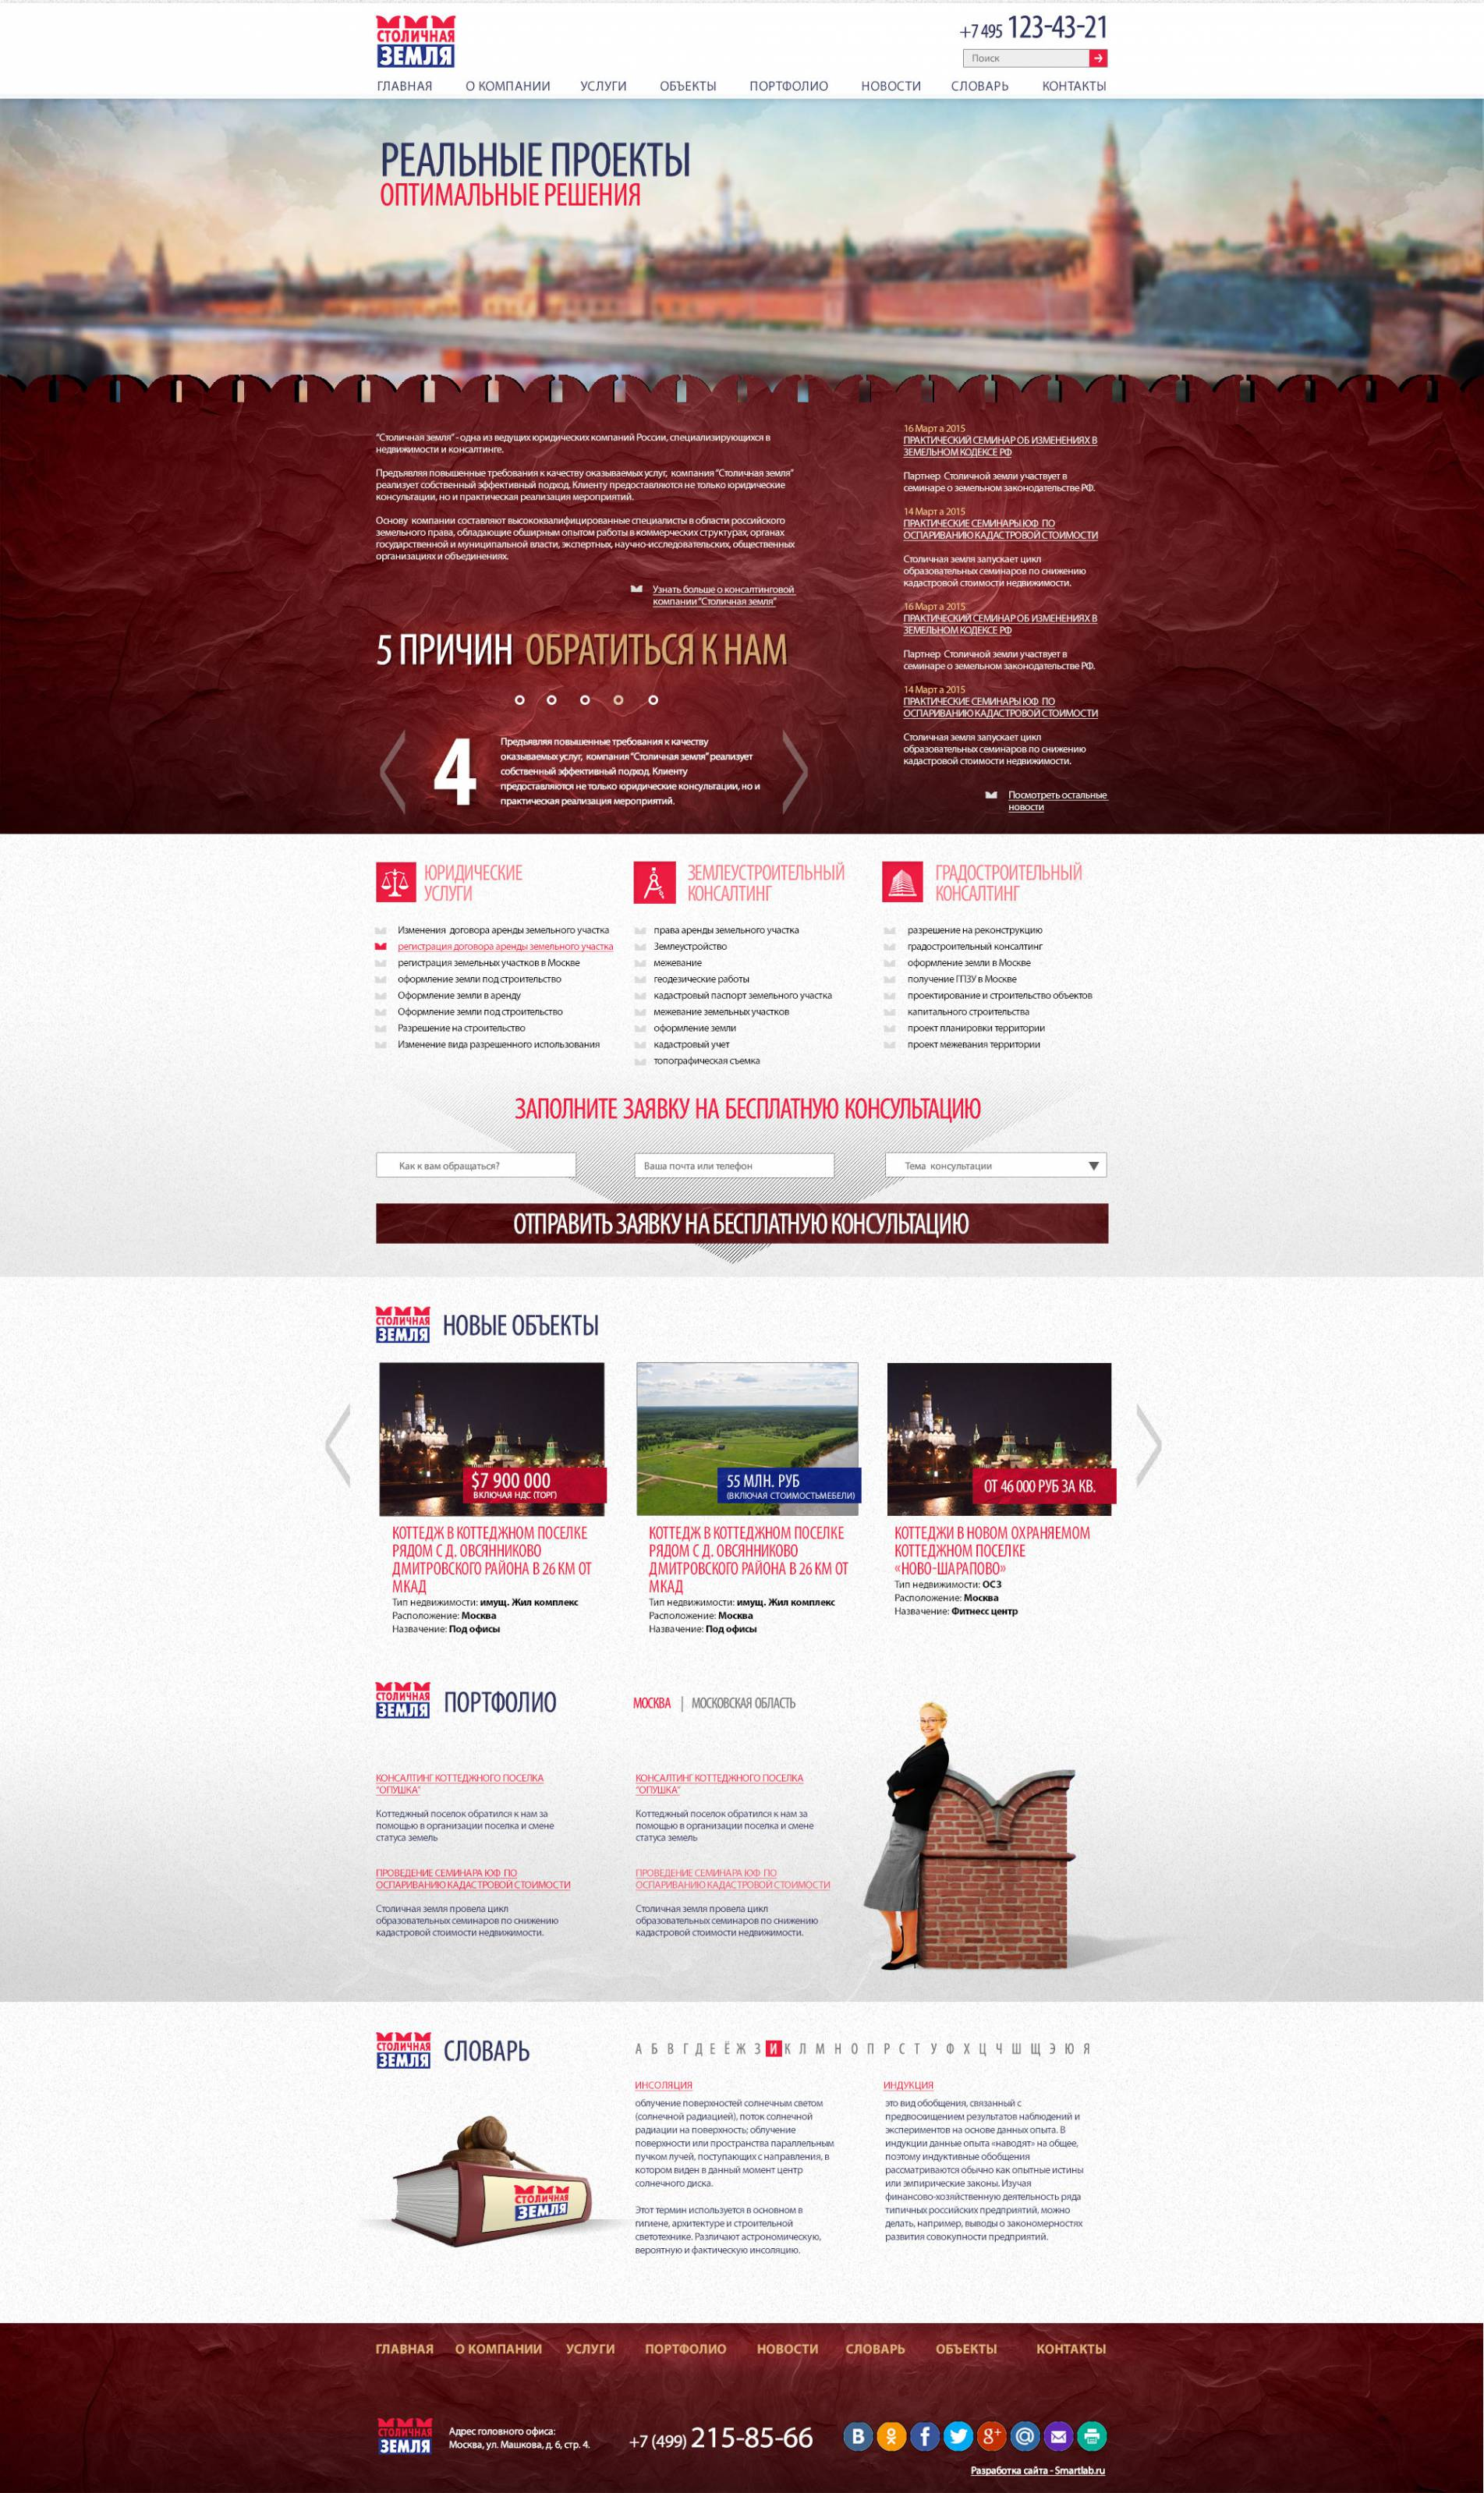 Redesign of the web site for a consulting company